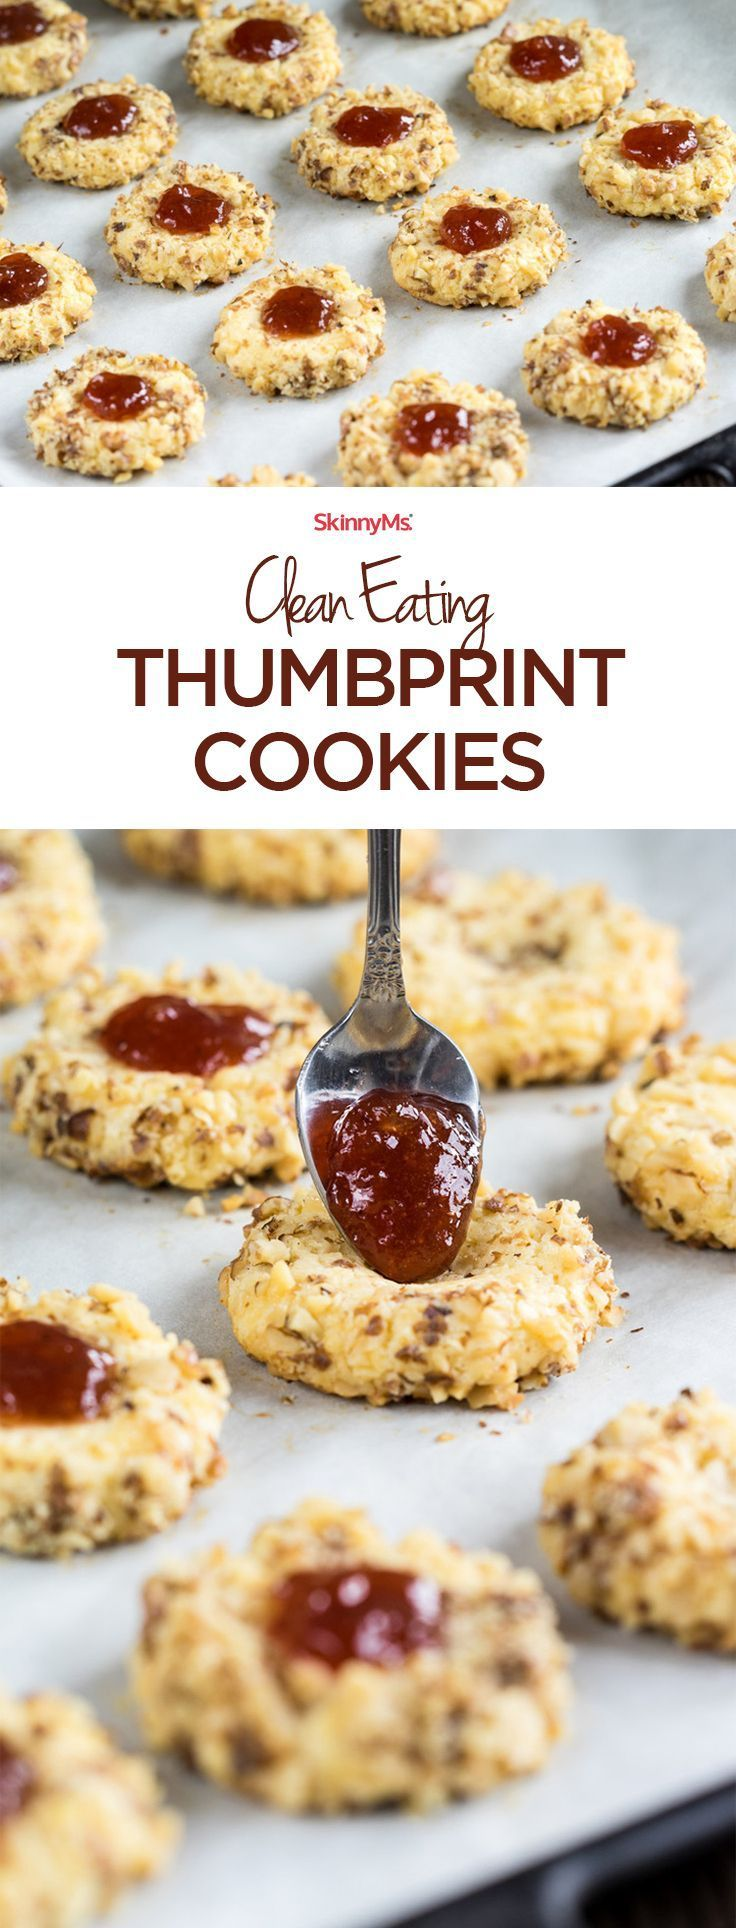 1000+ ideas about Thumbprint Cookies on Pinterest | Cookies, Cookie ...